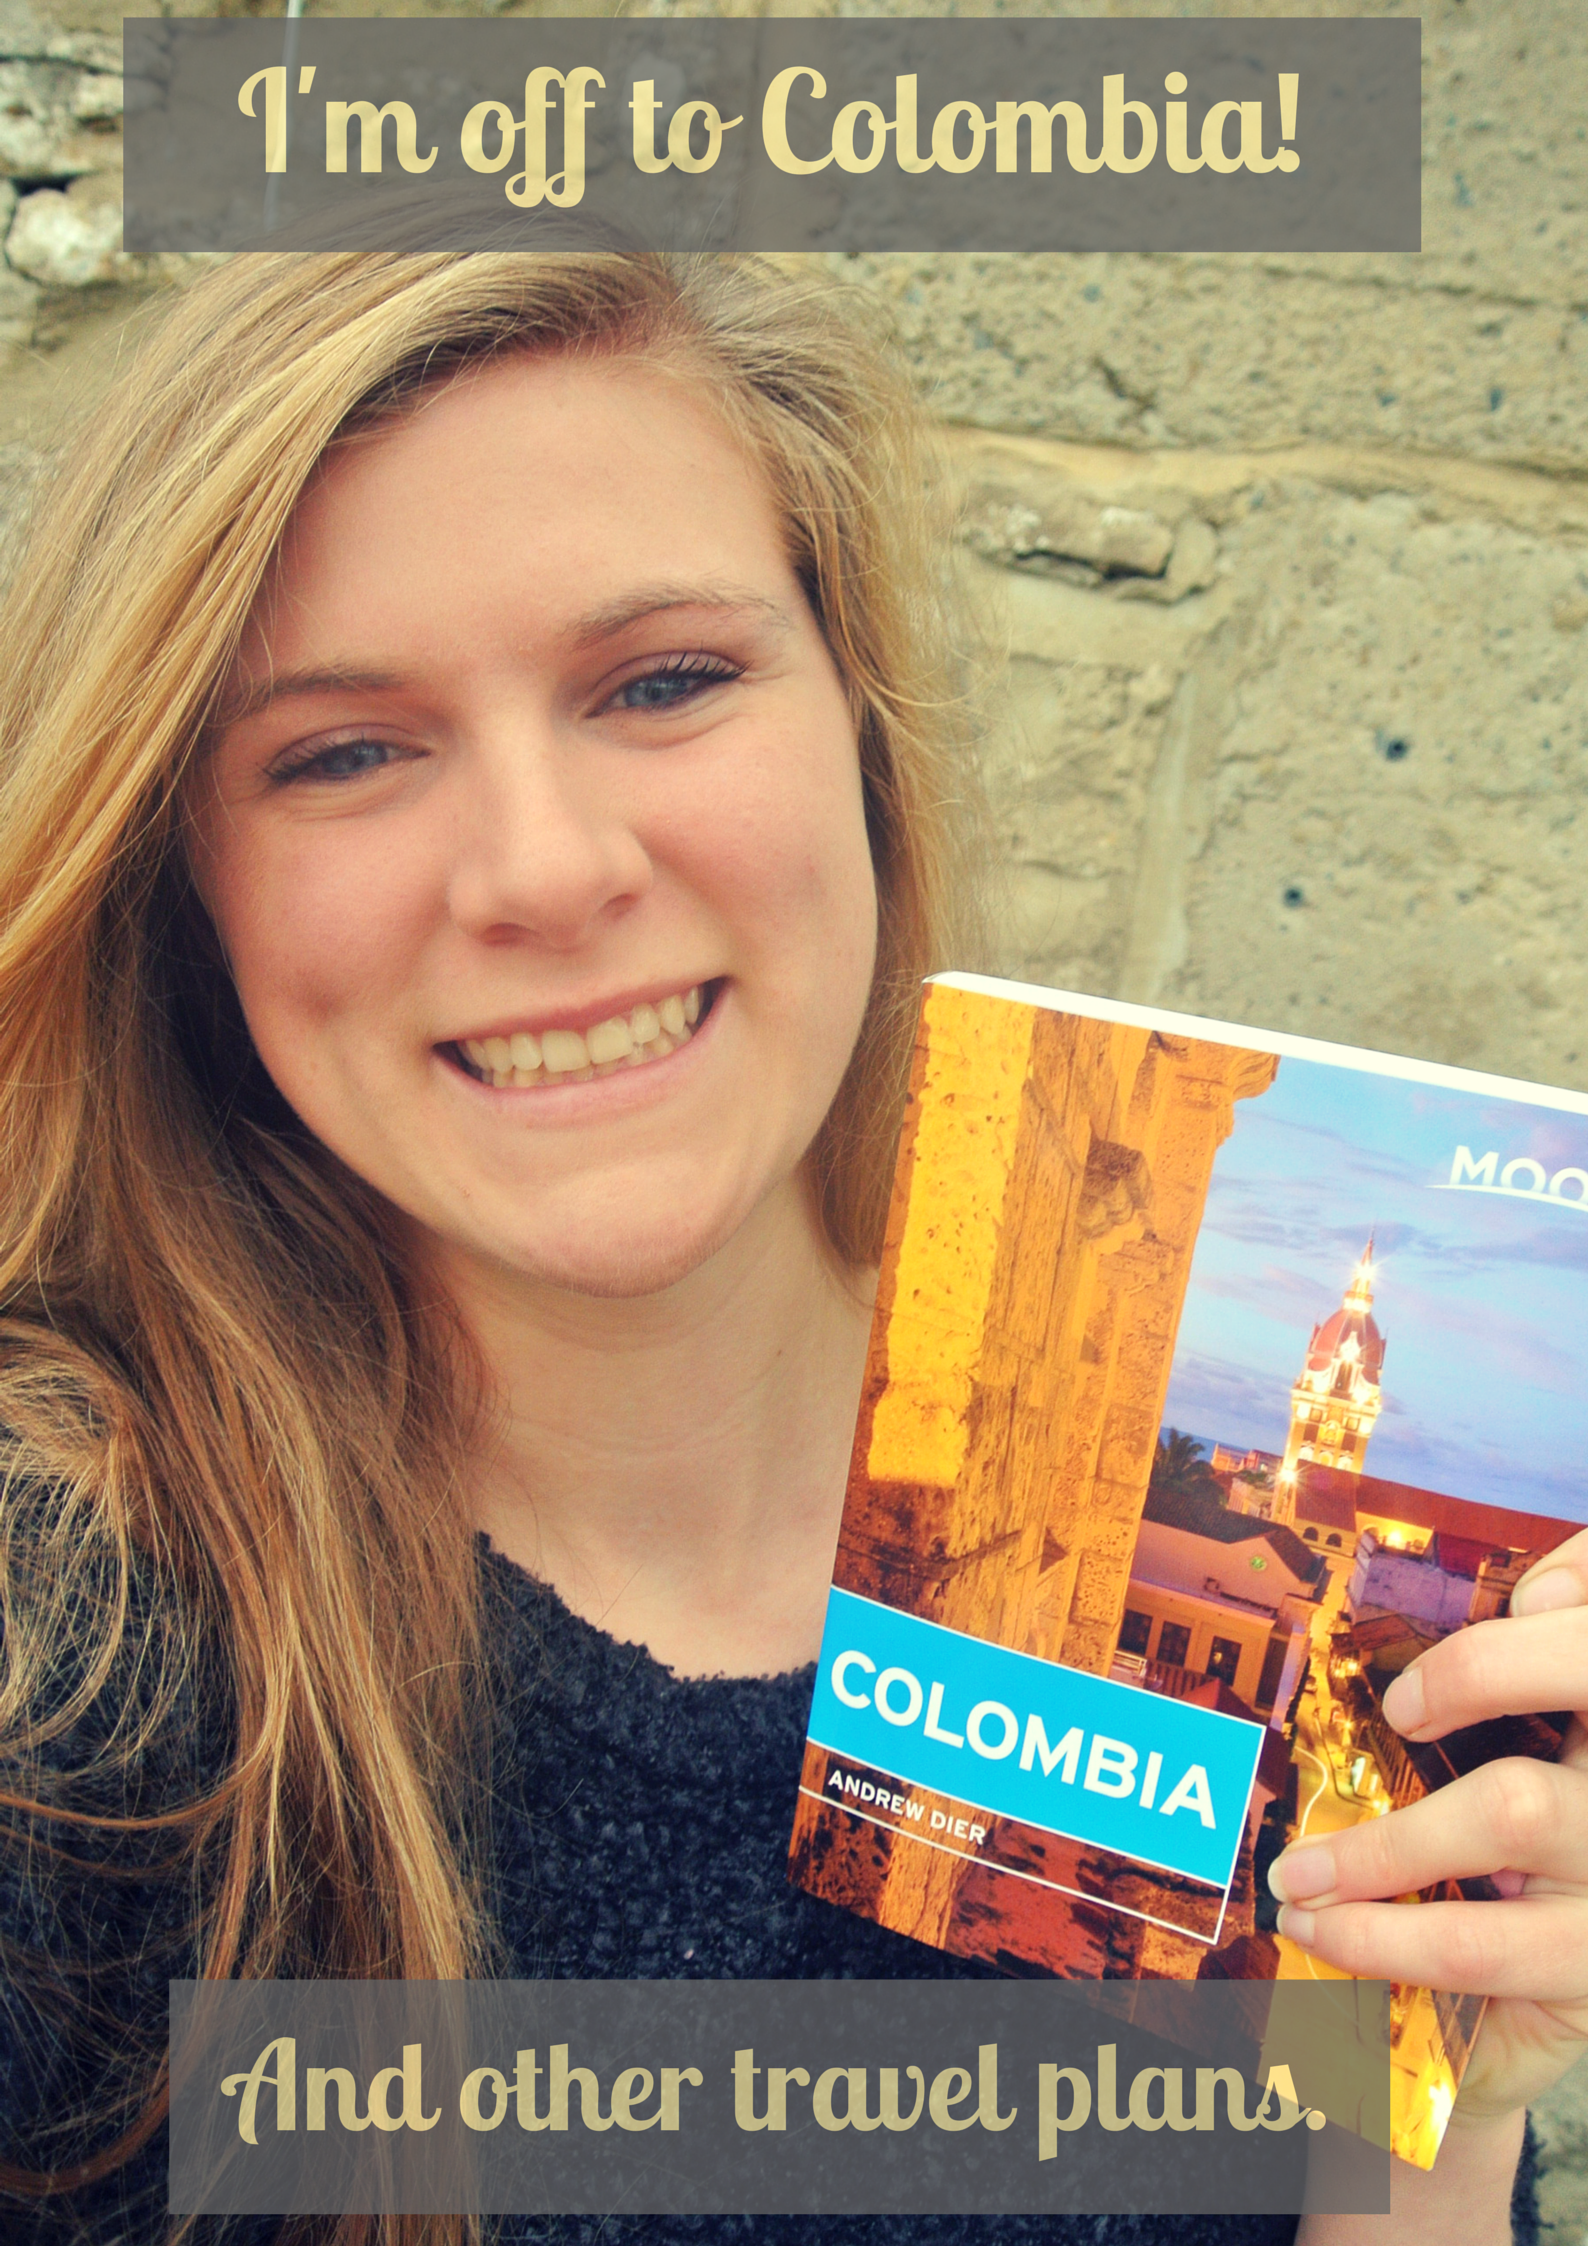 Great news, I'm off to Colombia in 2015!